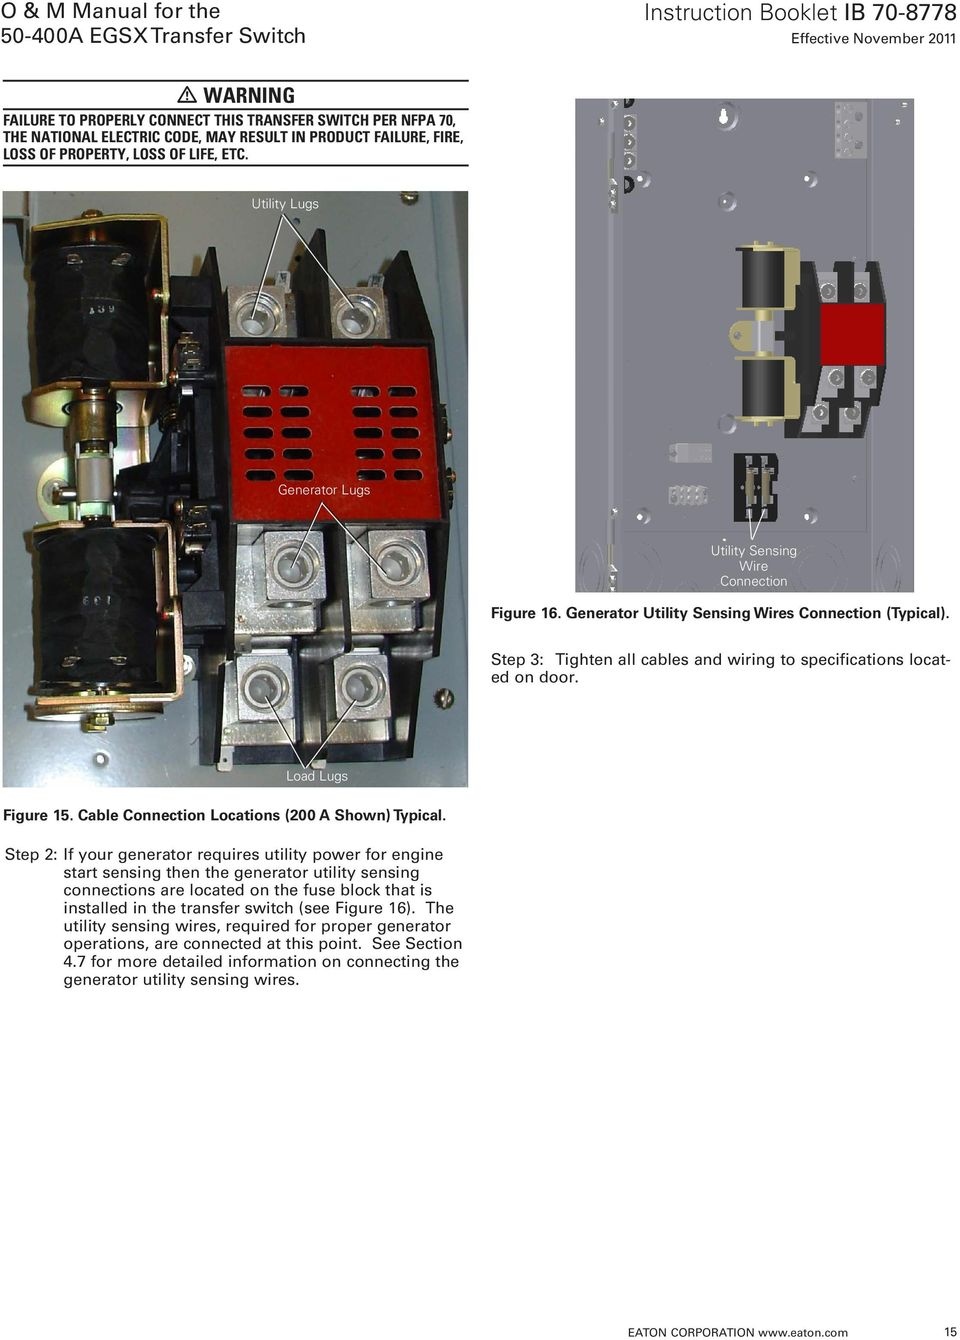 O M Manual For The A Egsx Transfer Switch Pdf Eaton Pull Out Wiring Diagram Step 3 Tighten All Cables And To Specifications Located On Door Load Lugs